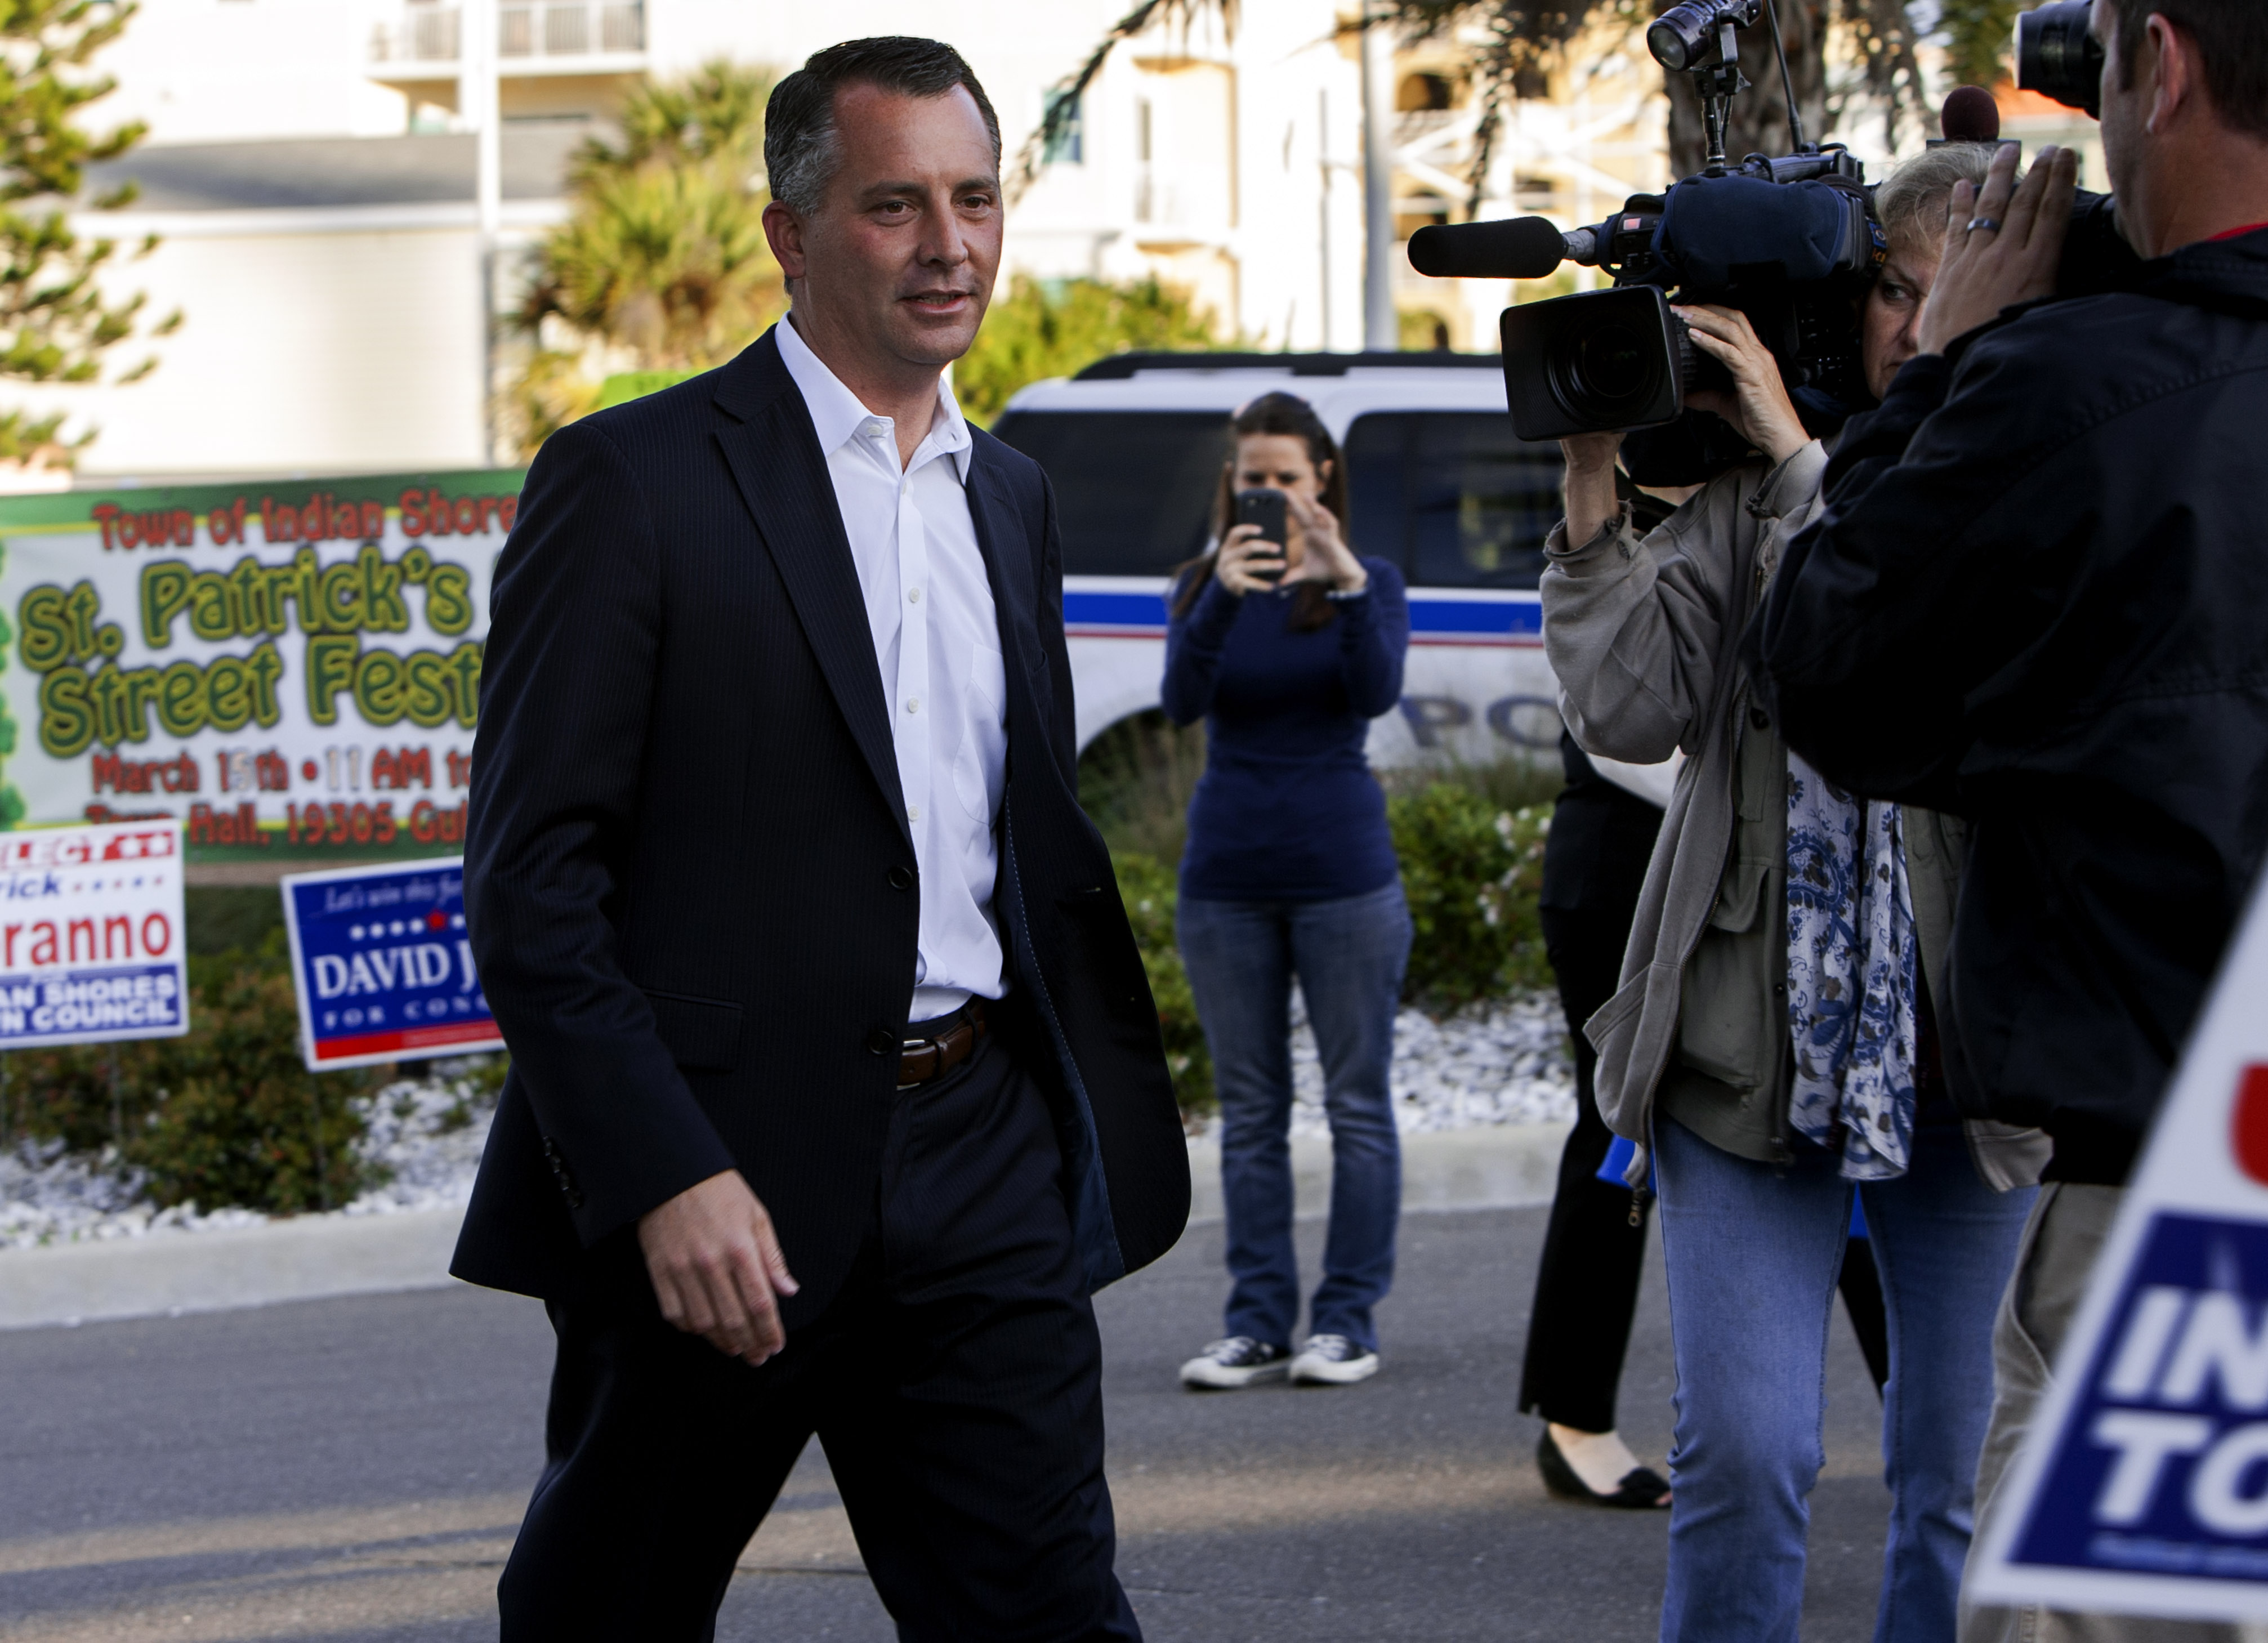 Candidate David Jolly arrives at the Indian Shores Town Hall to place his vote in the special election for the Florida 13th Congressional District in Indian Shores, Fla., on March 11, 2014